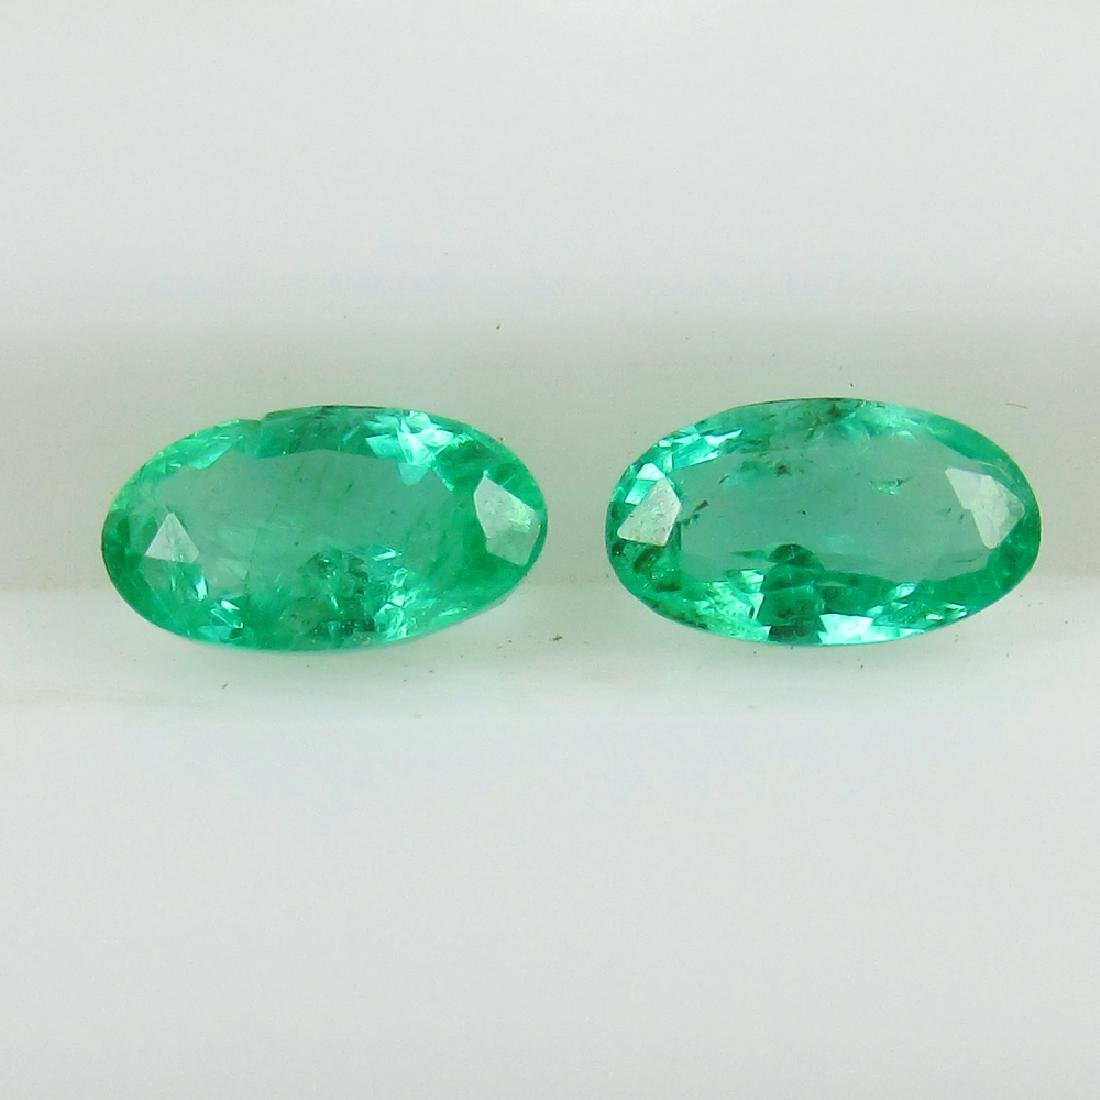 0.43 Ct Genuine Loose Zambian Emerald 5X3 mm Oval Pair